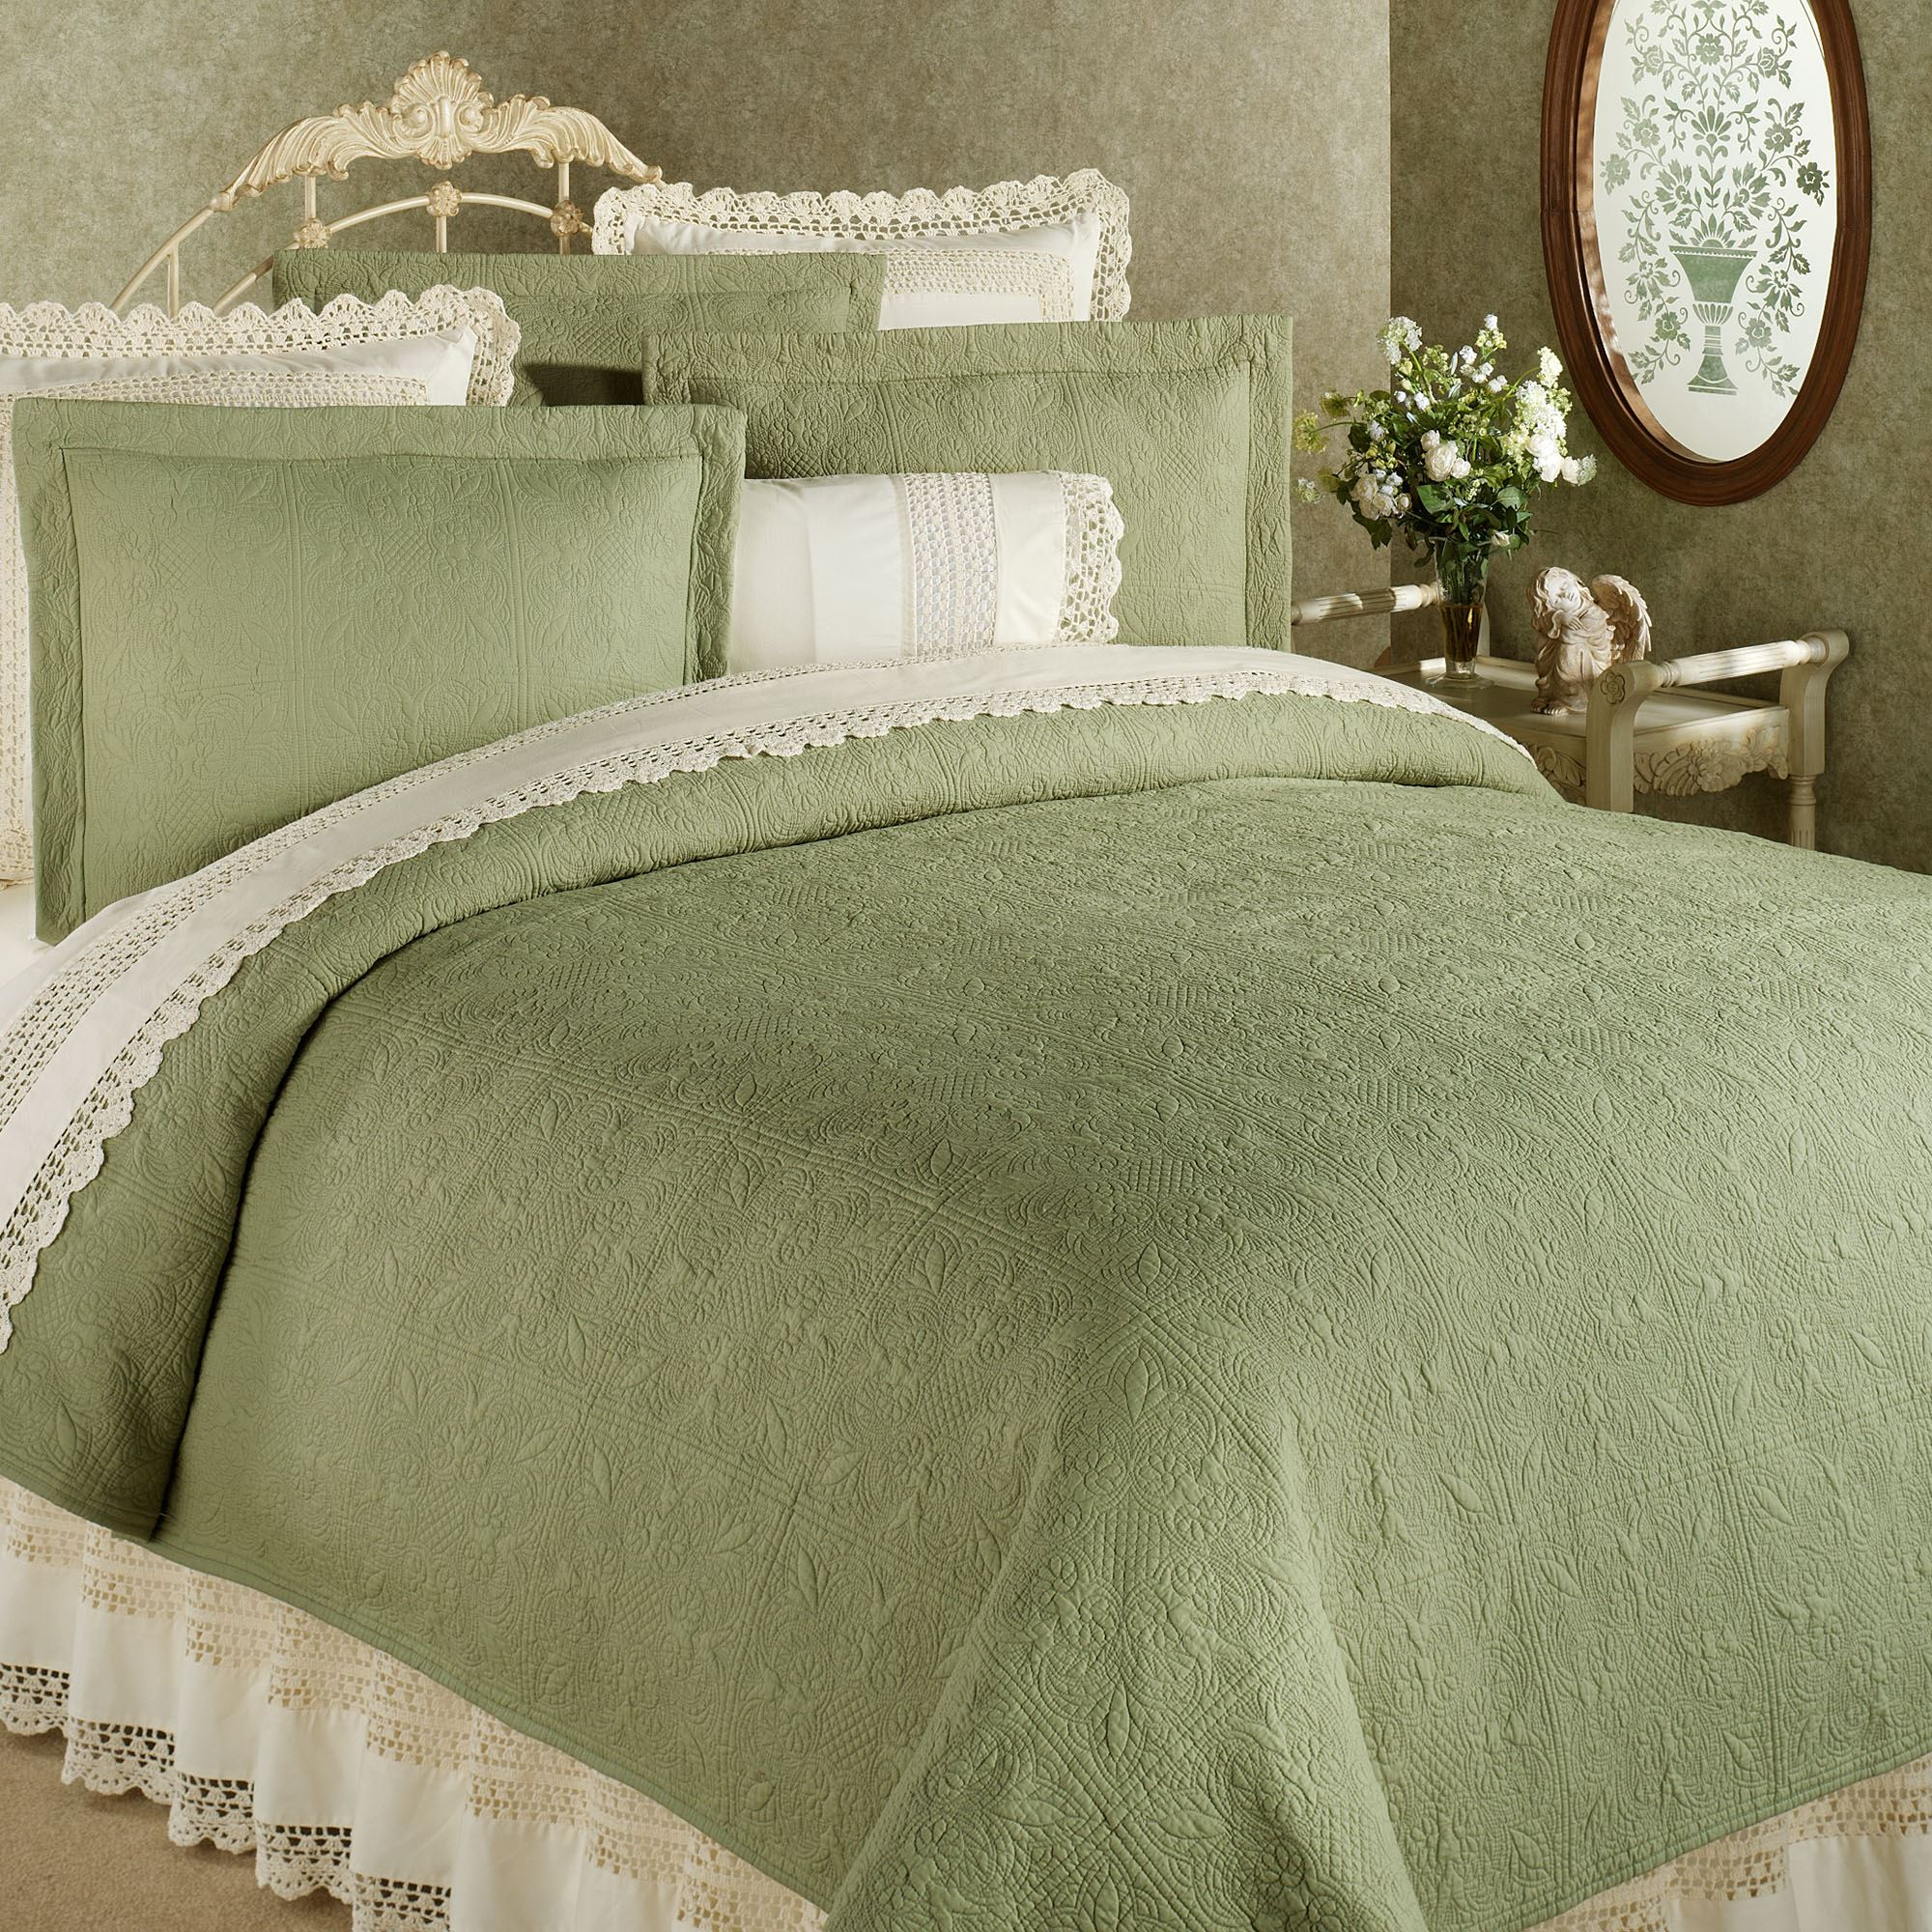 Solid Color Quilts and Matelasse Coverlet Bedding | Touch of Class : solid quilt - Adamdwight.com